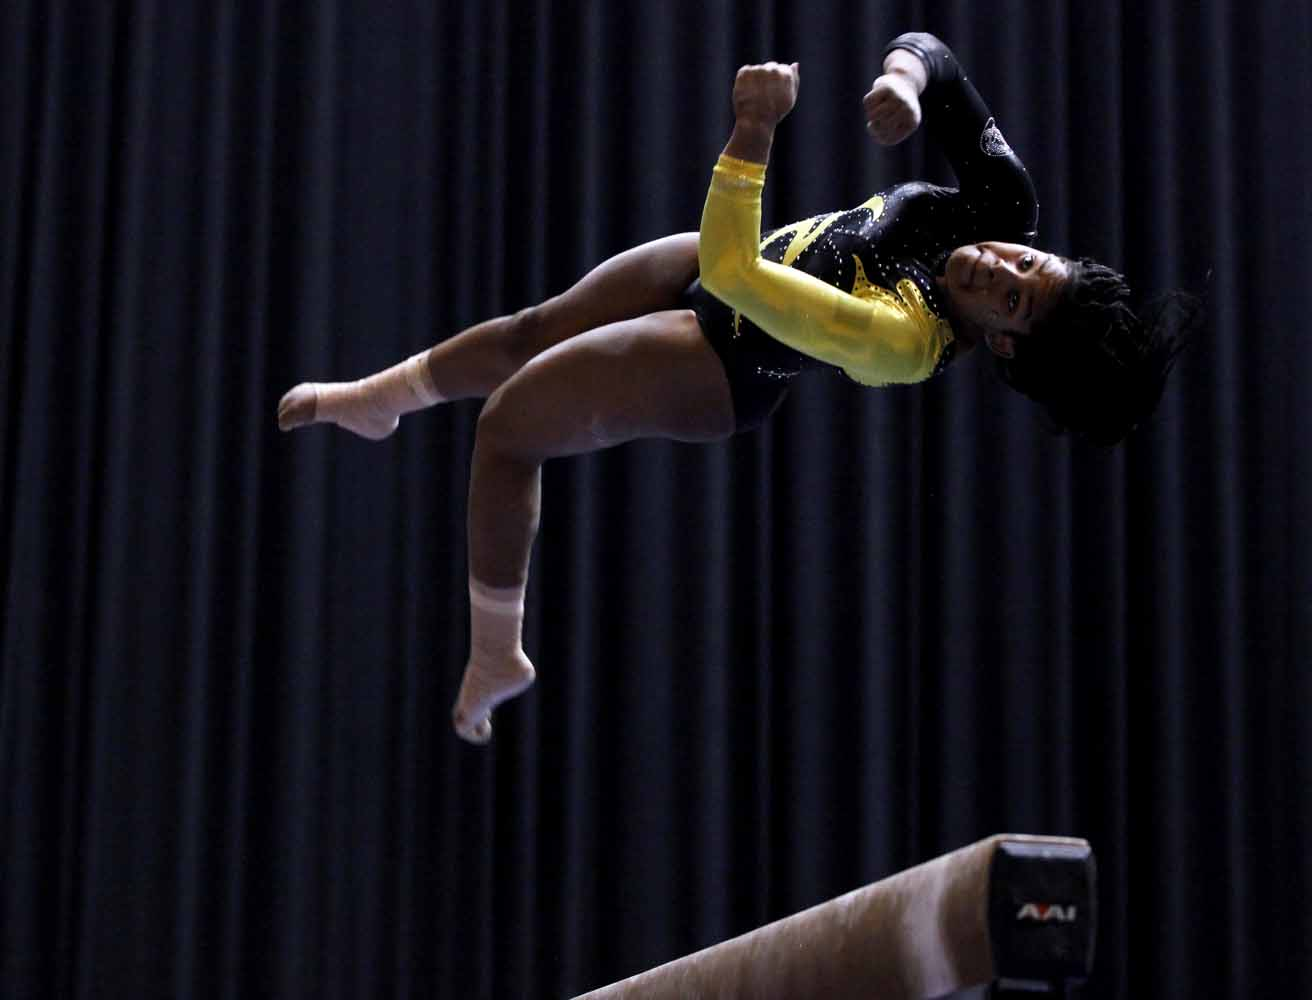 Mizzou sophomore Tia Allbritten jumps and twists during her performance on the balance beam Friday evening, Feb. 19, 2016 during the gymnastics competition against the University of Florida.